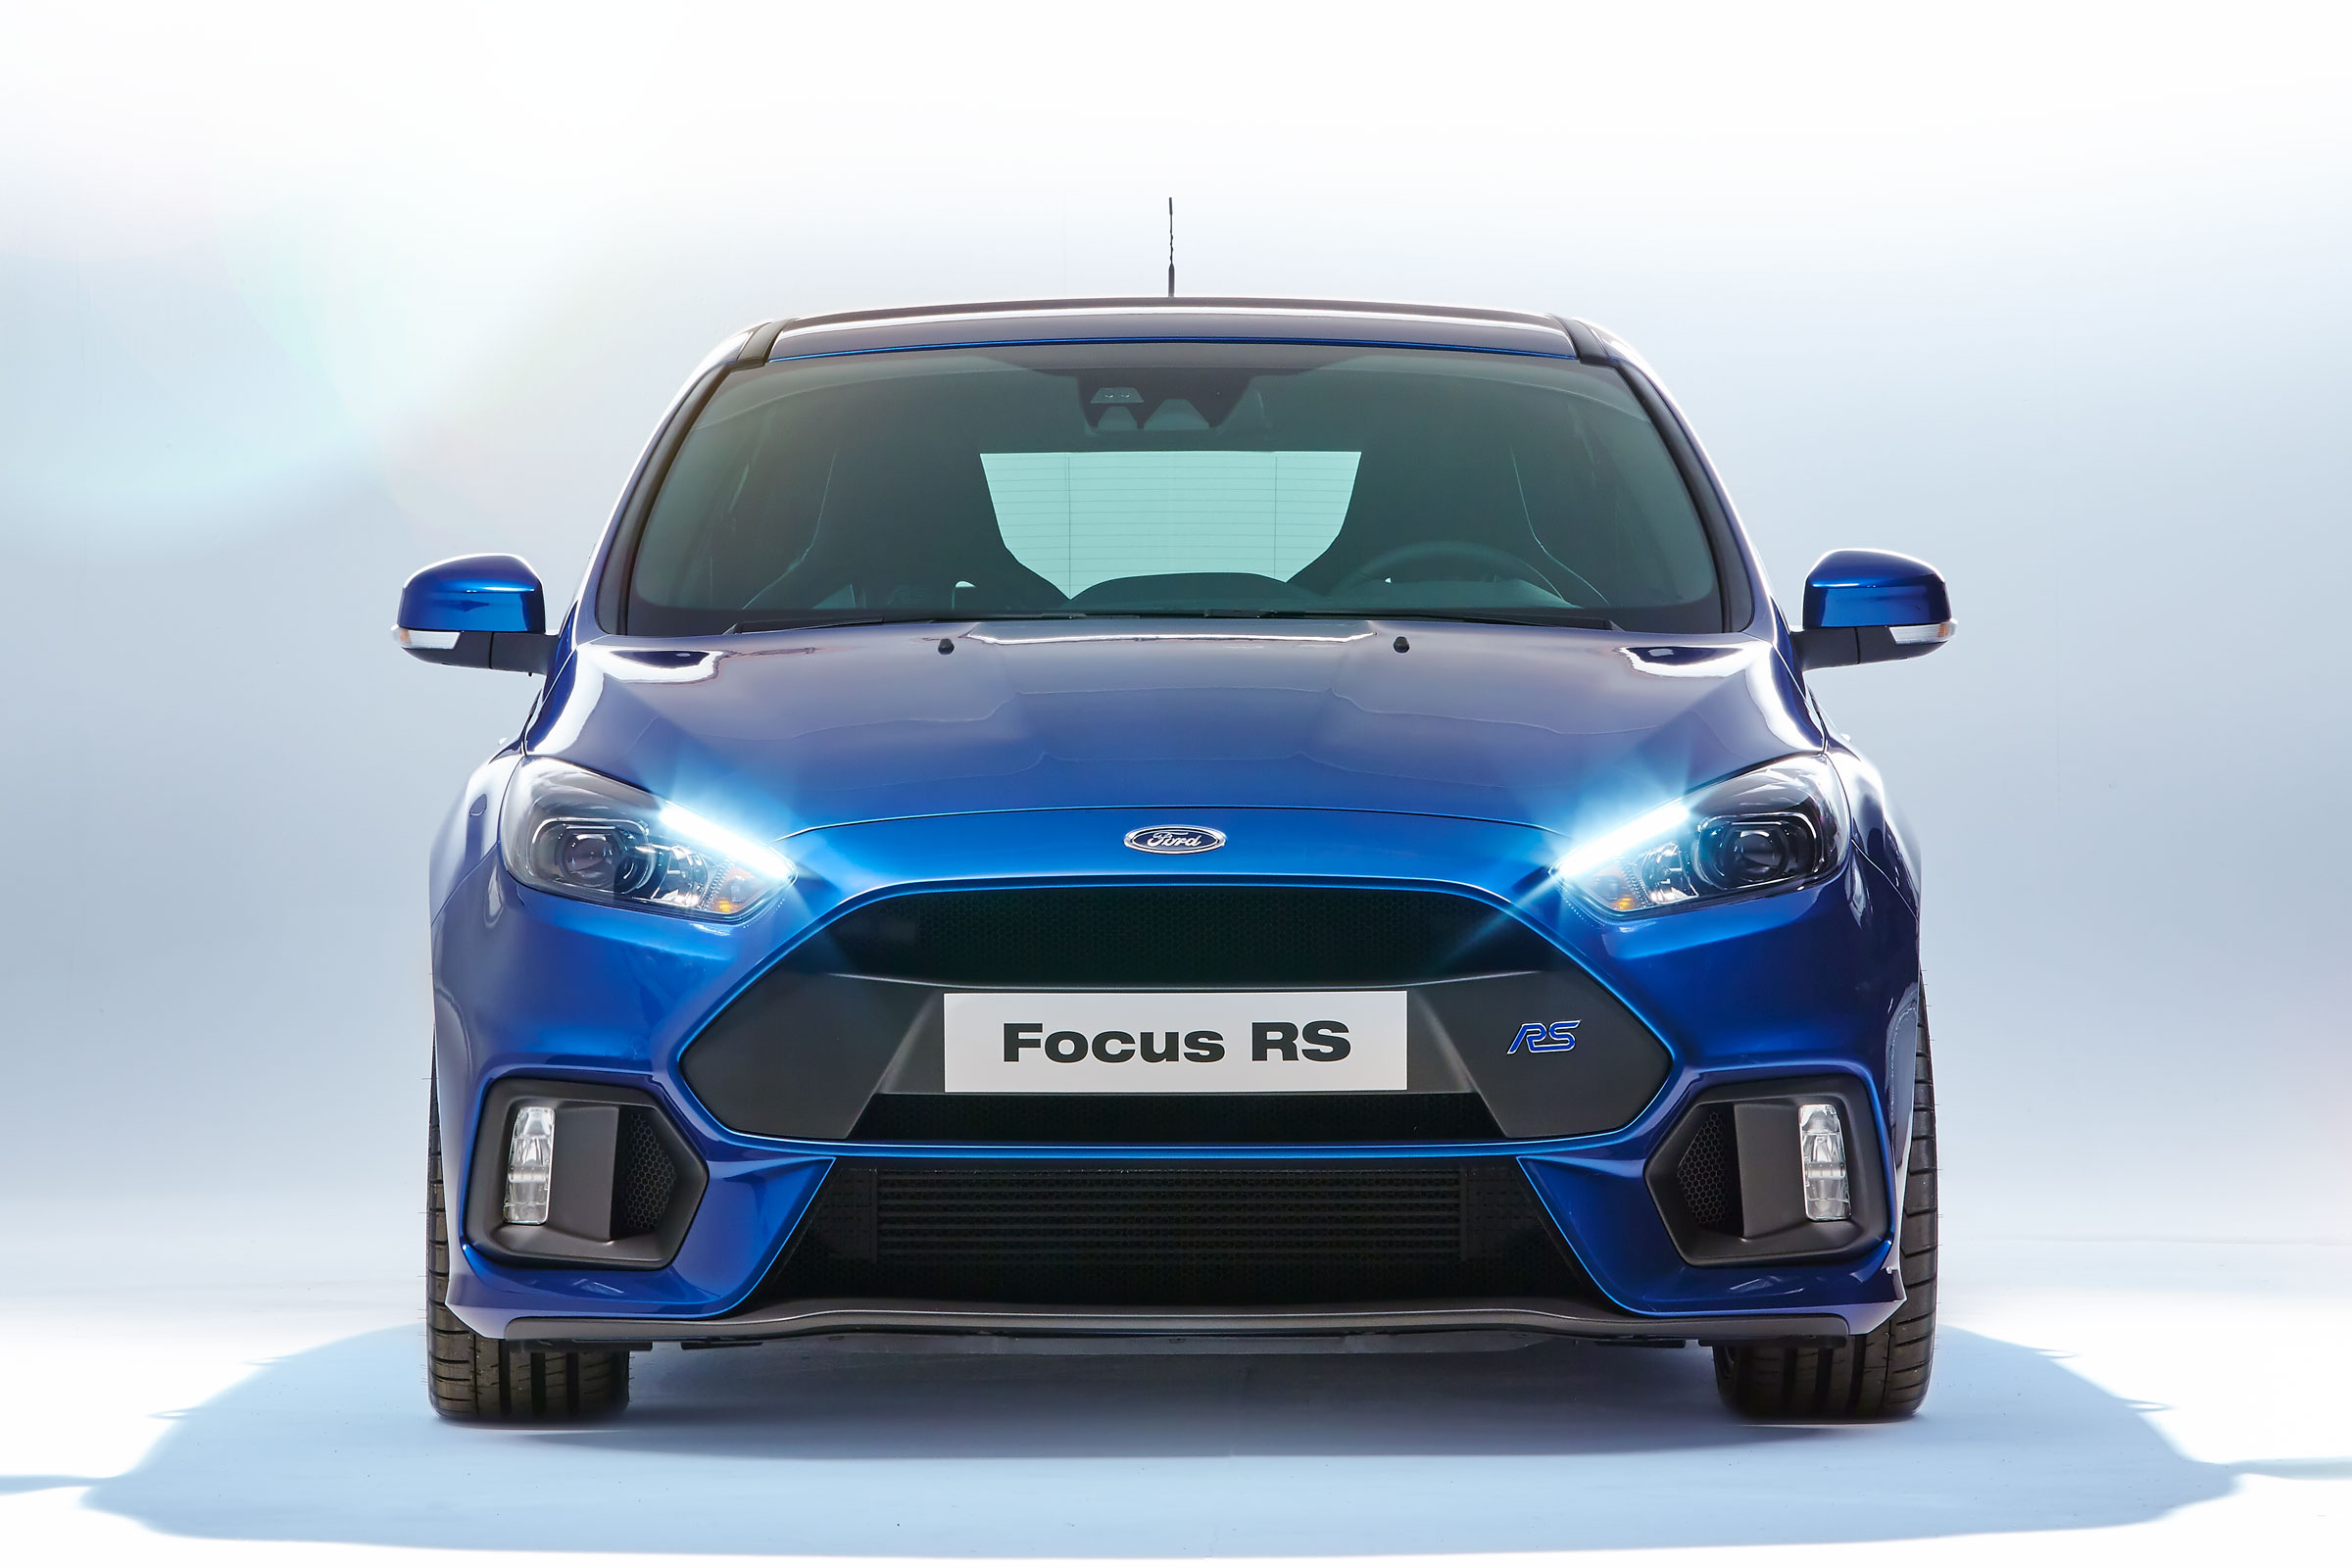 2015 ford focus rs wallpaper 5 2400x1600